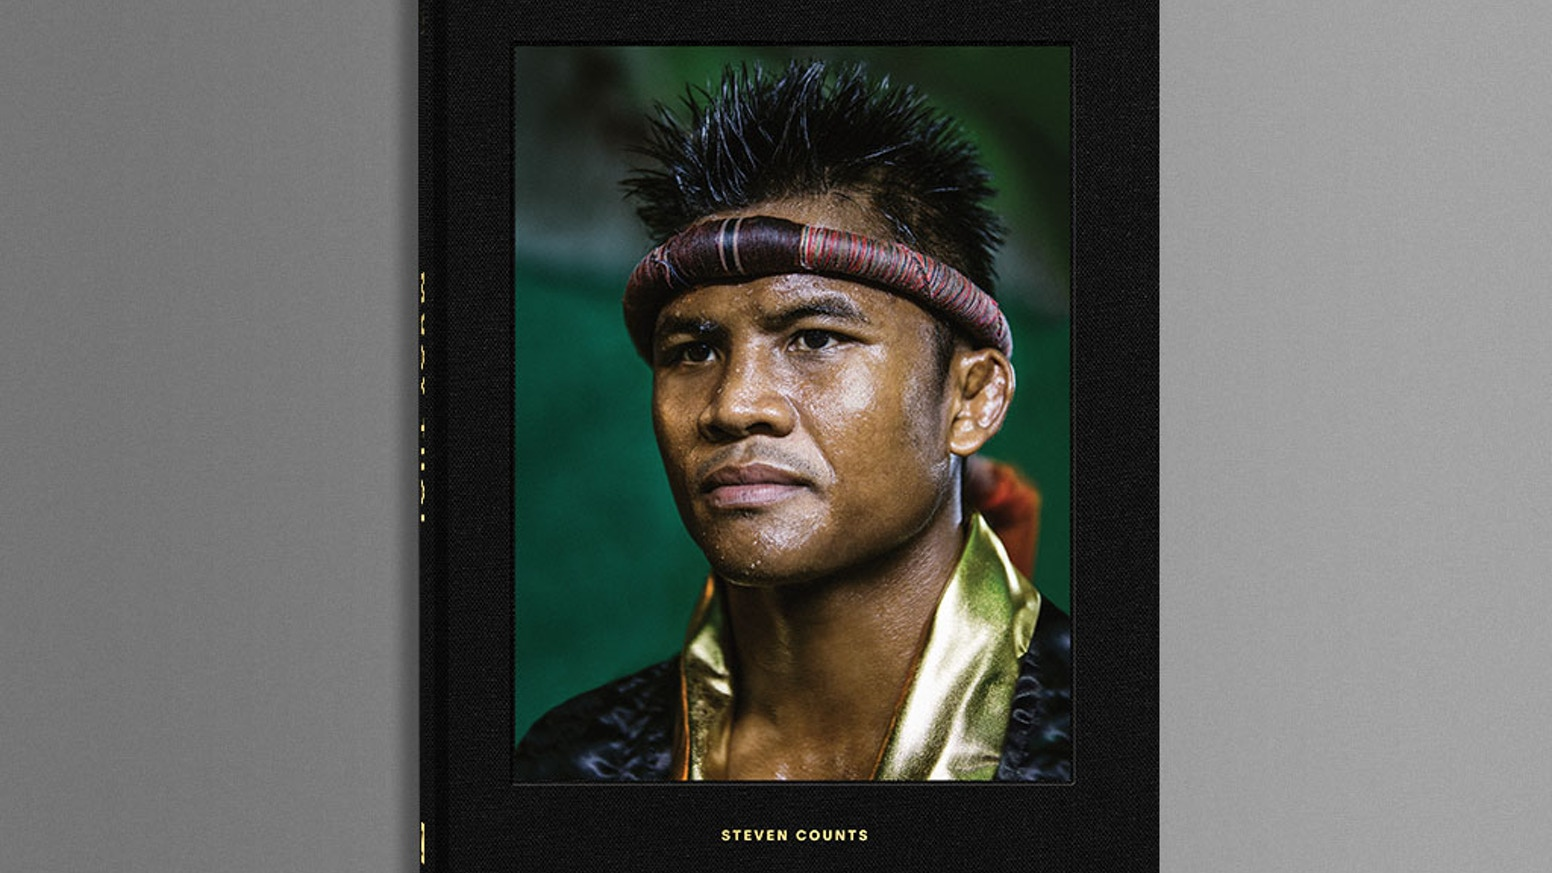 A hardcover photo book exploring Muay Thai lifestyle and culture throughout Thailand's countryside by American sports photographer Steven Counts.